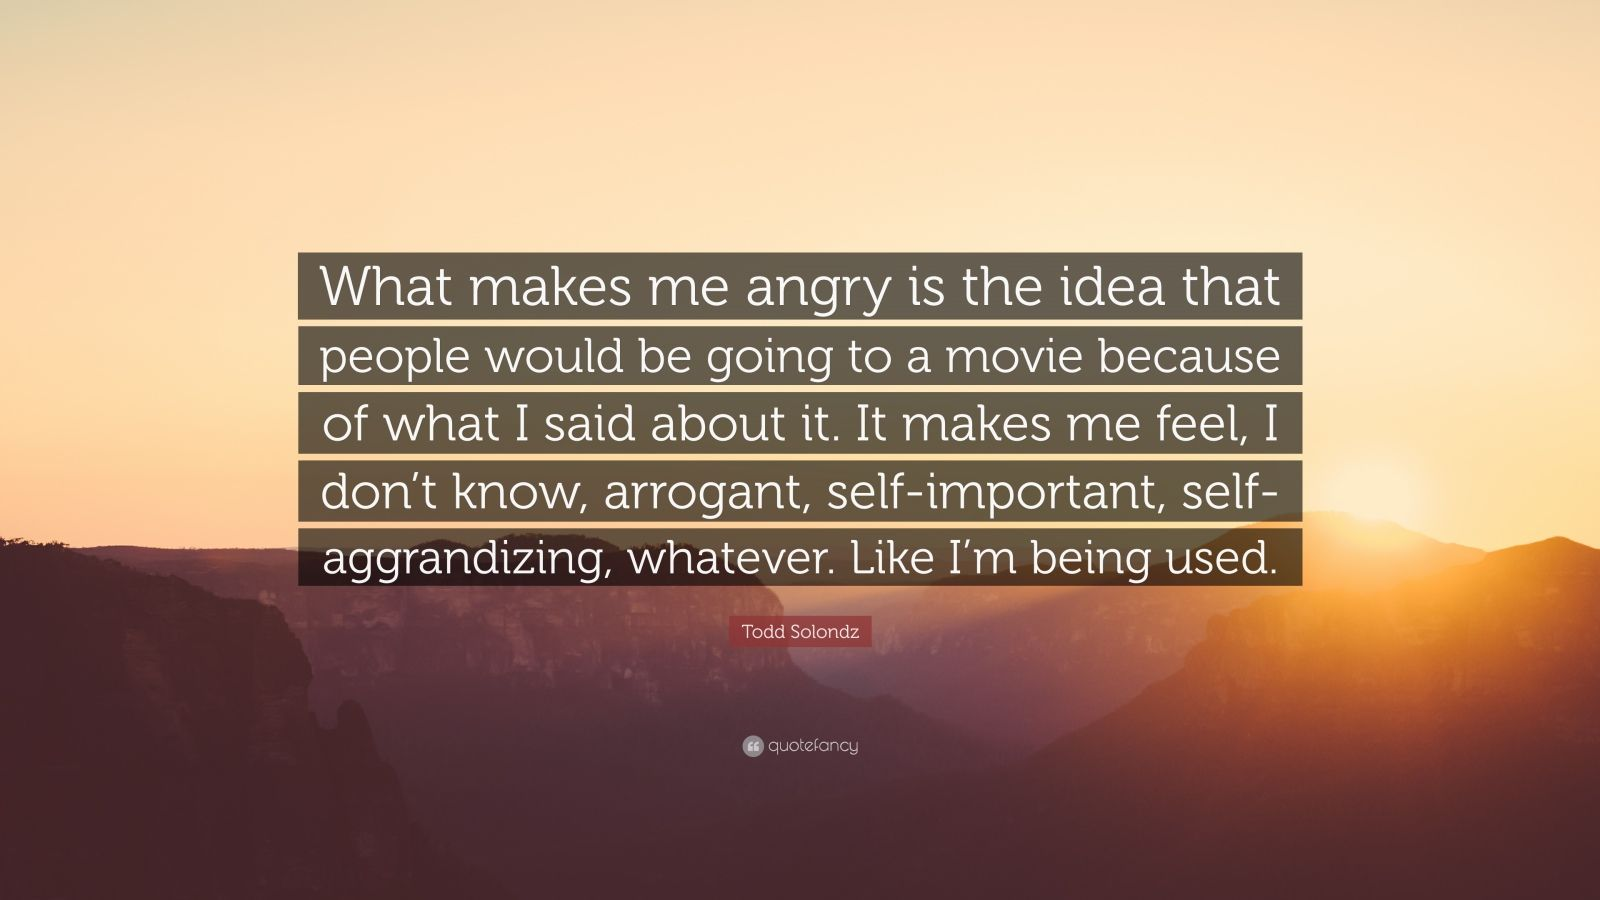 what makes me angry essay It's not easy to respond calmly when you're feeling angry with someone, but that's what it takes to find a solution try these ideas next time anger bubbles up it's not easy to respond calmly when you're feeling angry with someone, but that's what it takes to find a solution try these ideas next time anger bubbles up.